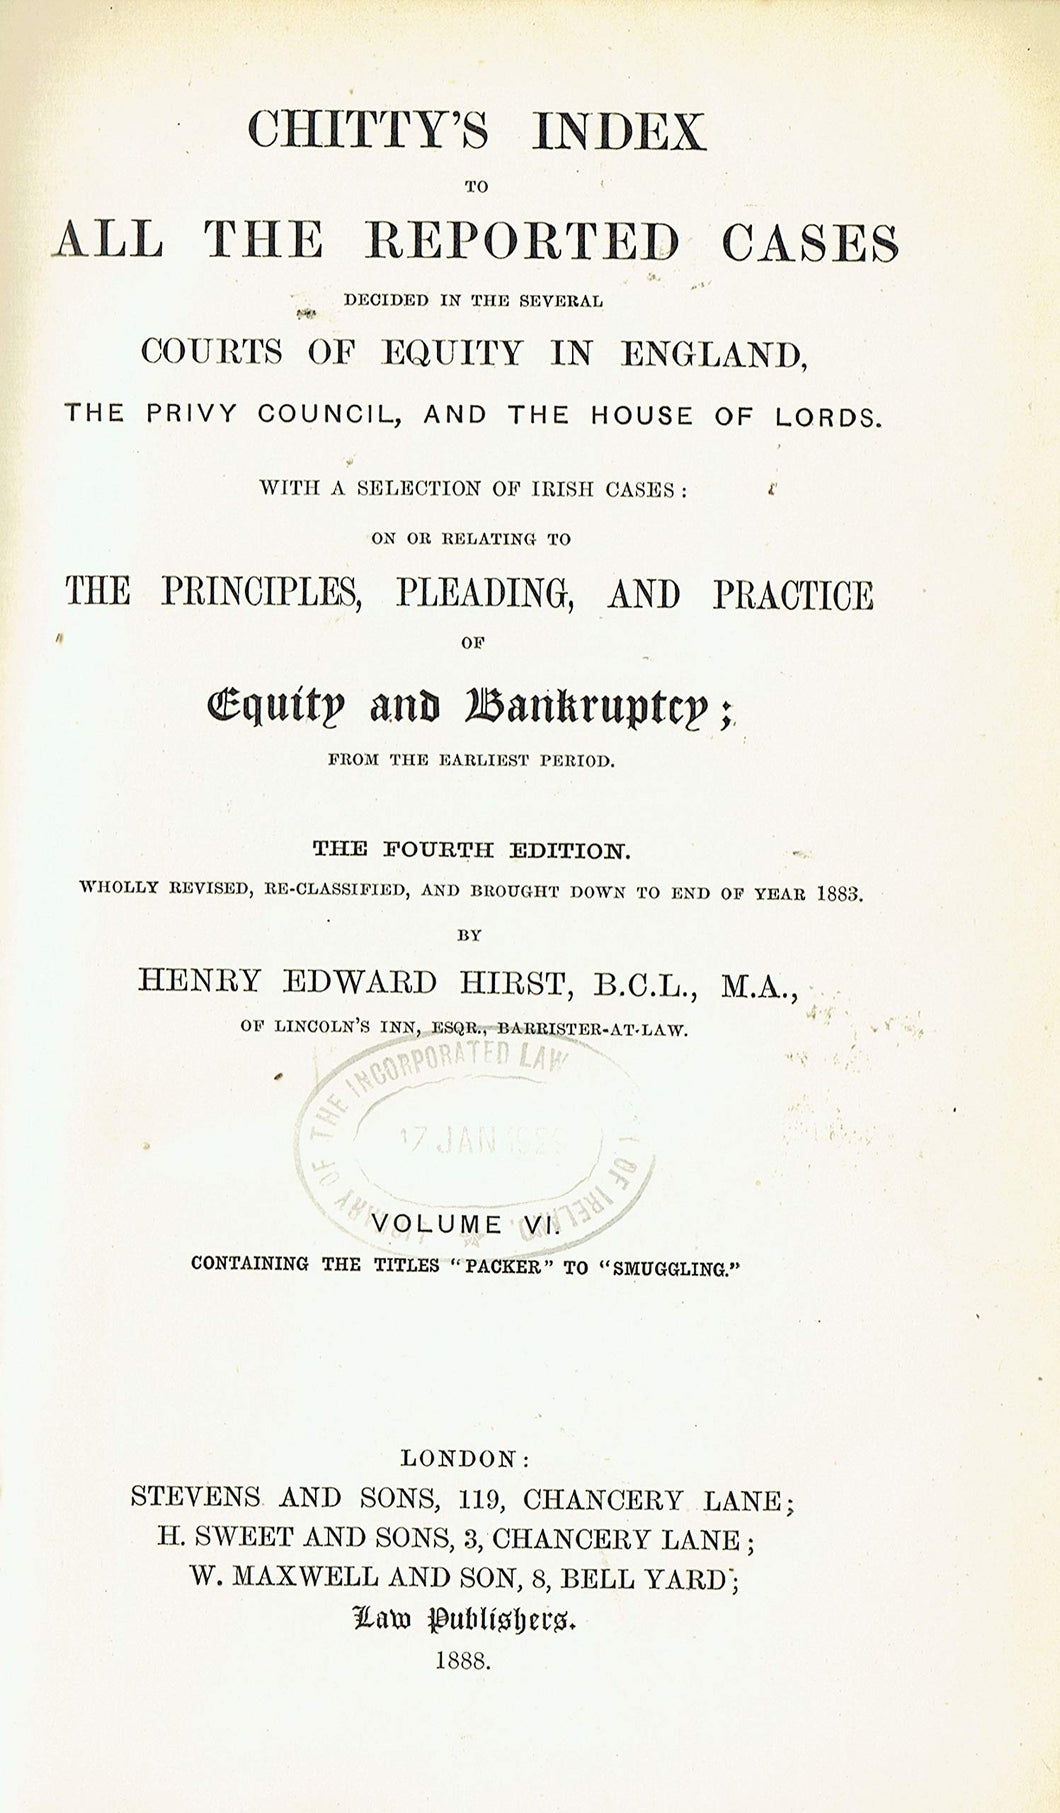 Chitty's Equity Index, Fourth Edition Volume VI (Volume 6) - Chitty's Index to All the Reported Cases Decided in the Several Courts of Equity in England, the Privy Council, and the House of Lords